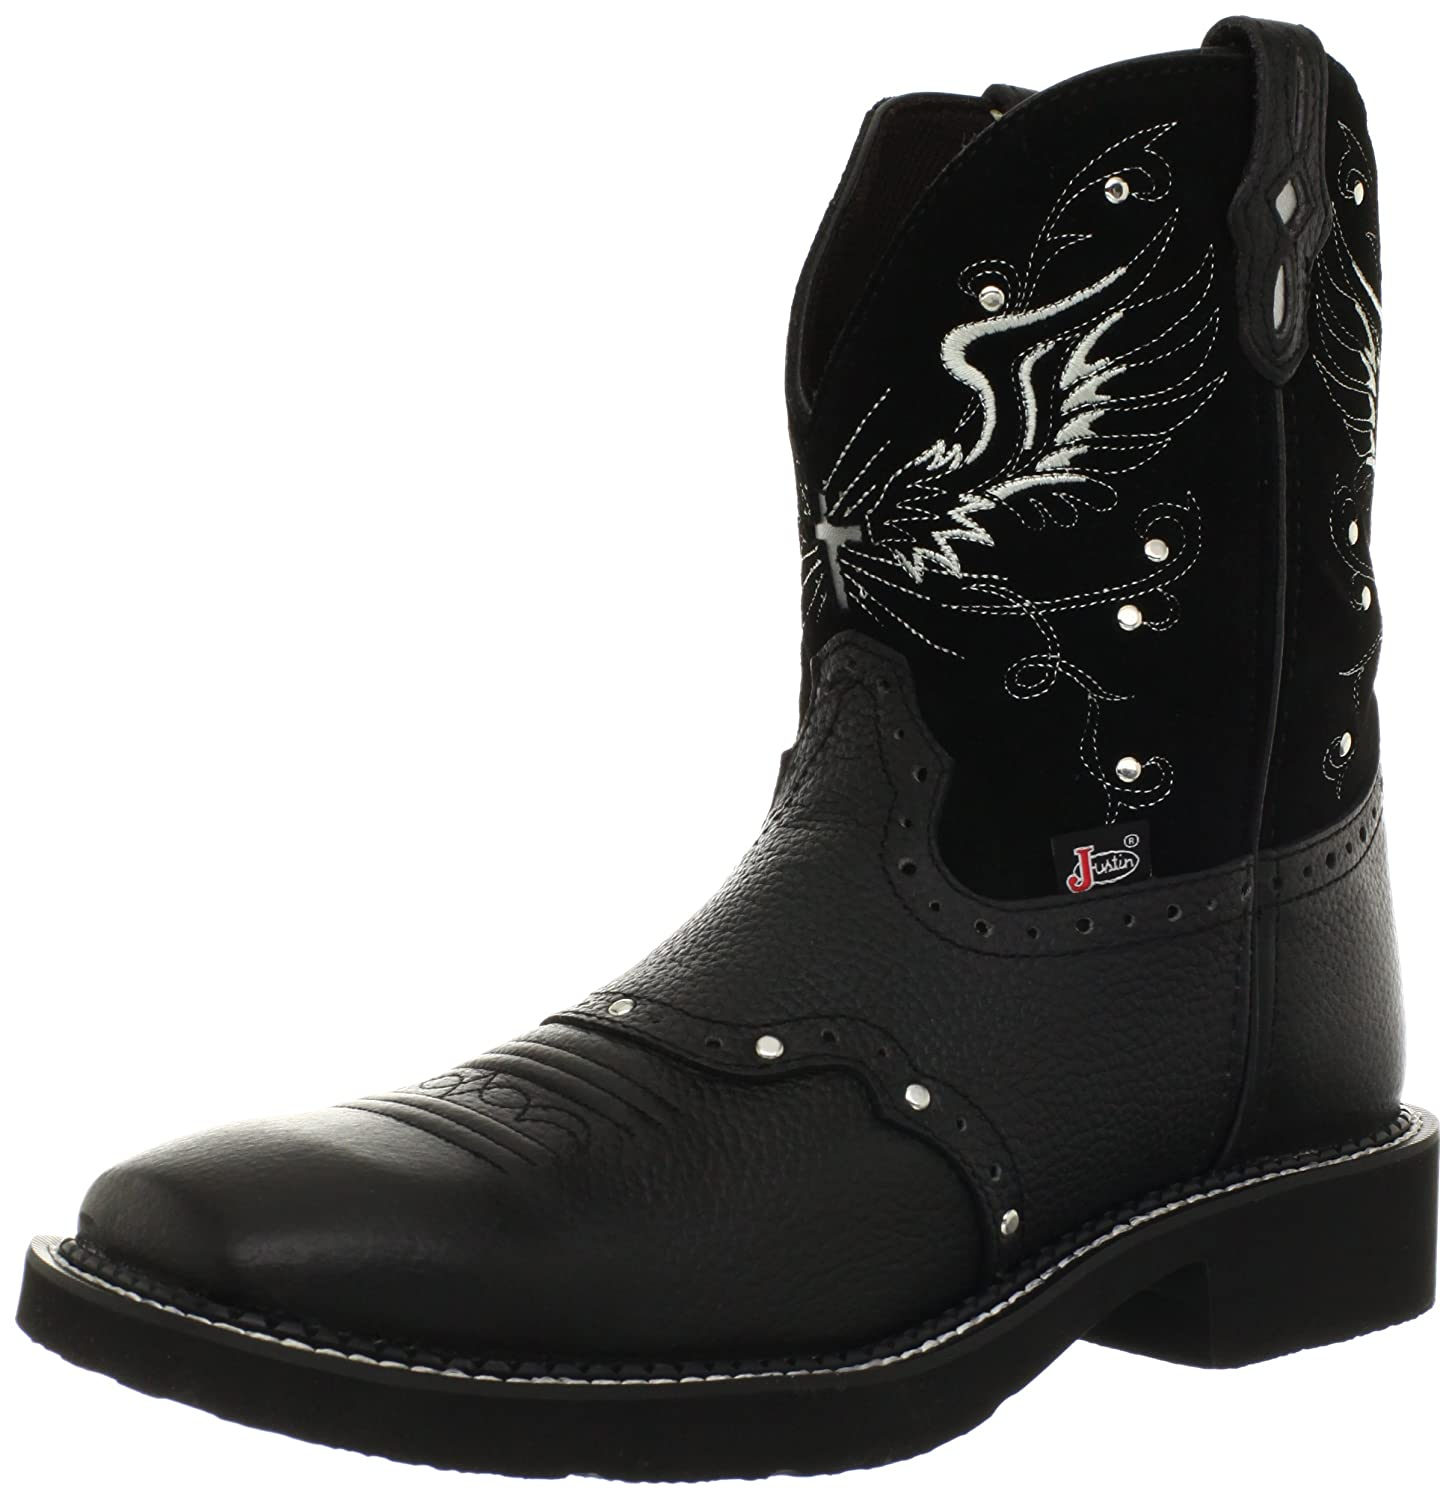 Justin Gypsy Winged Cross Justin Footwear Gypsy Collection 12 Soft Toe P